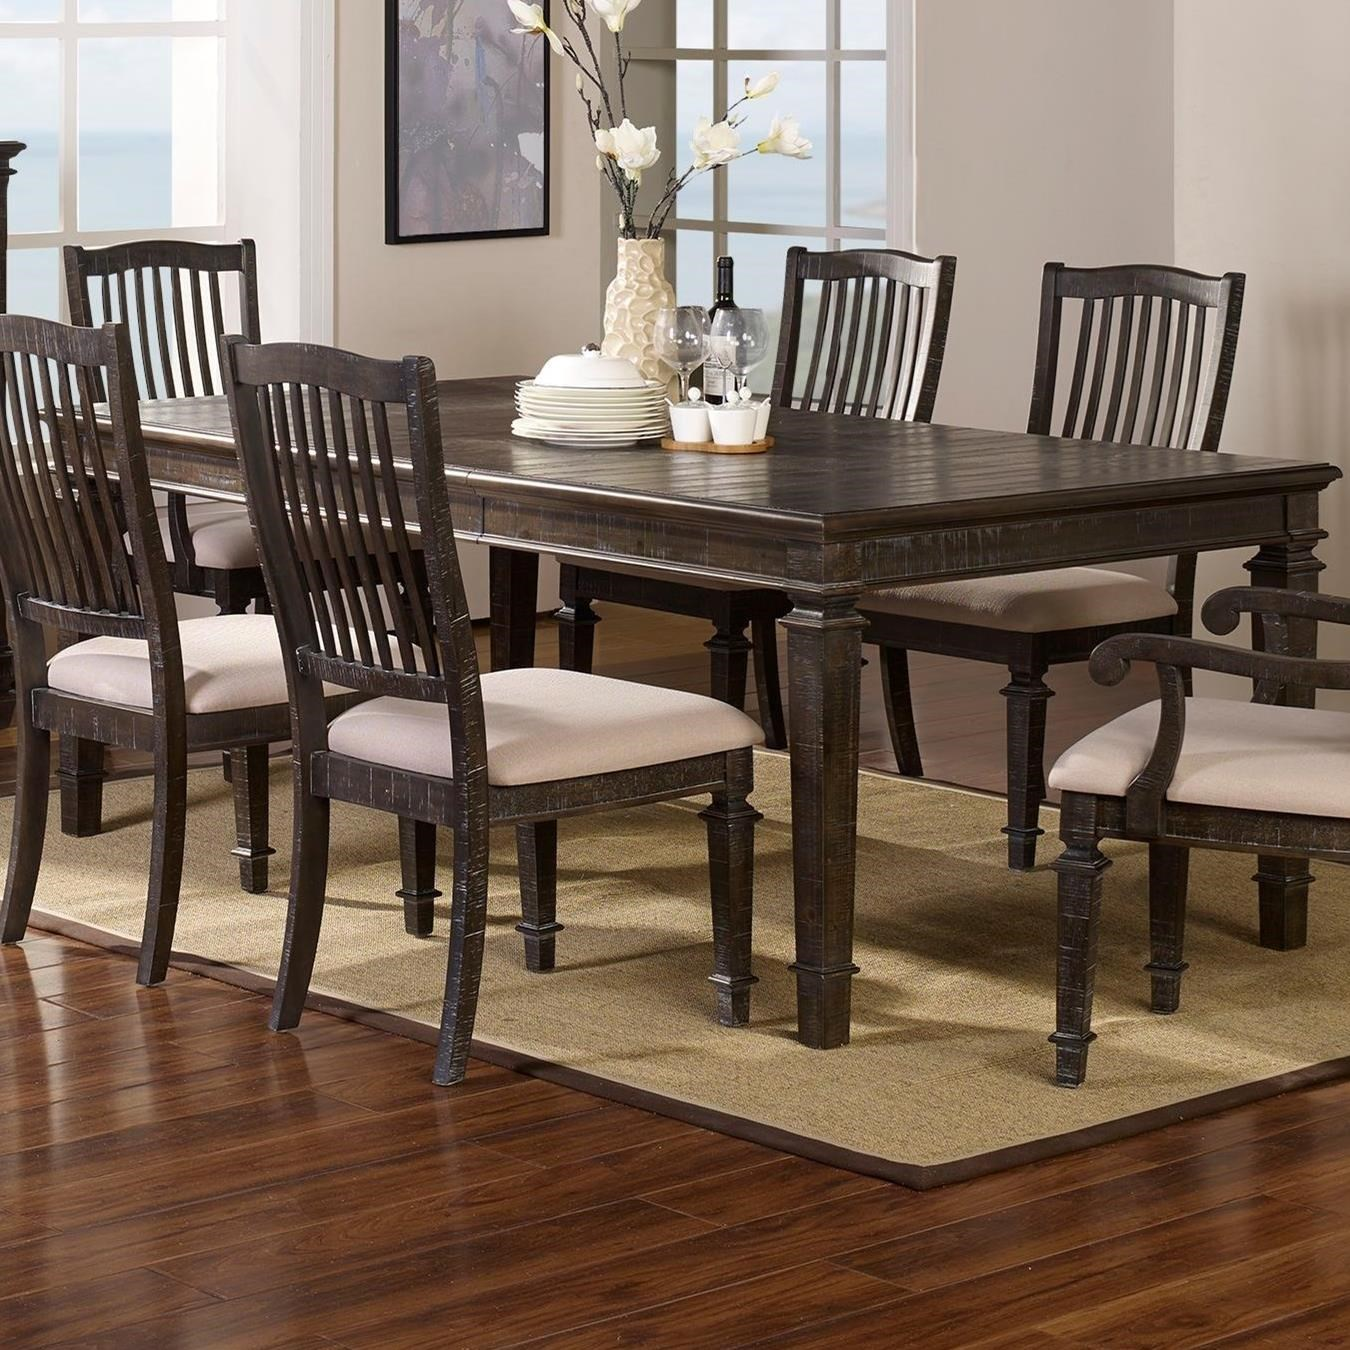 New Classic Cadiz Dining Dining Table - Item Number: 40-821-10